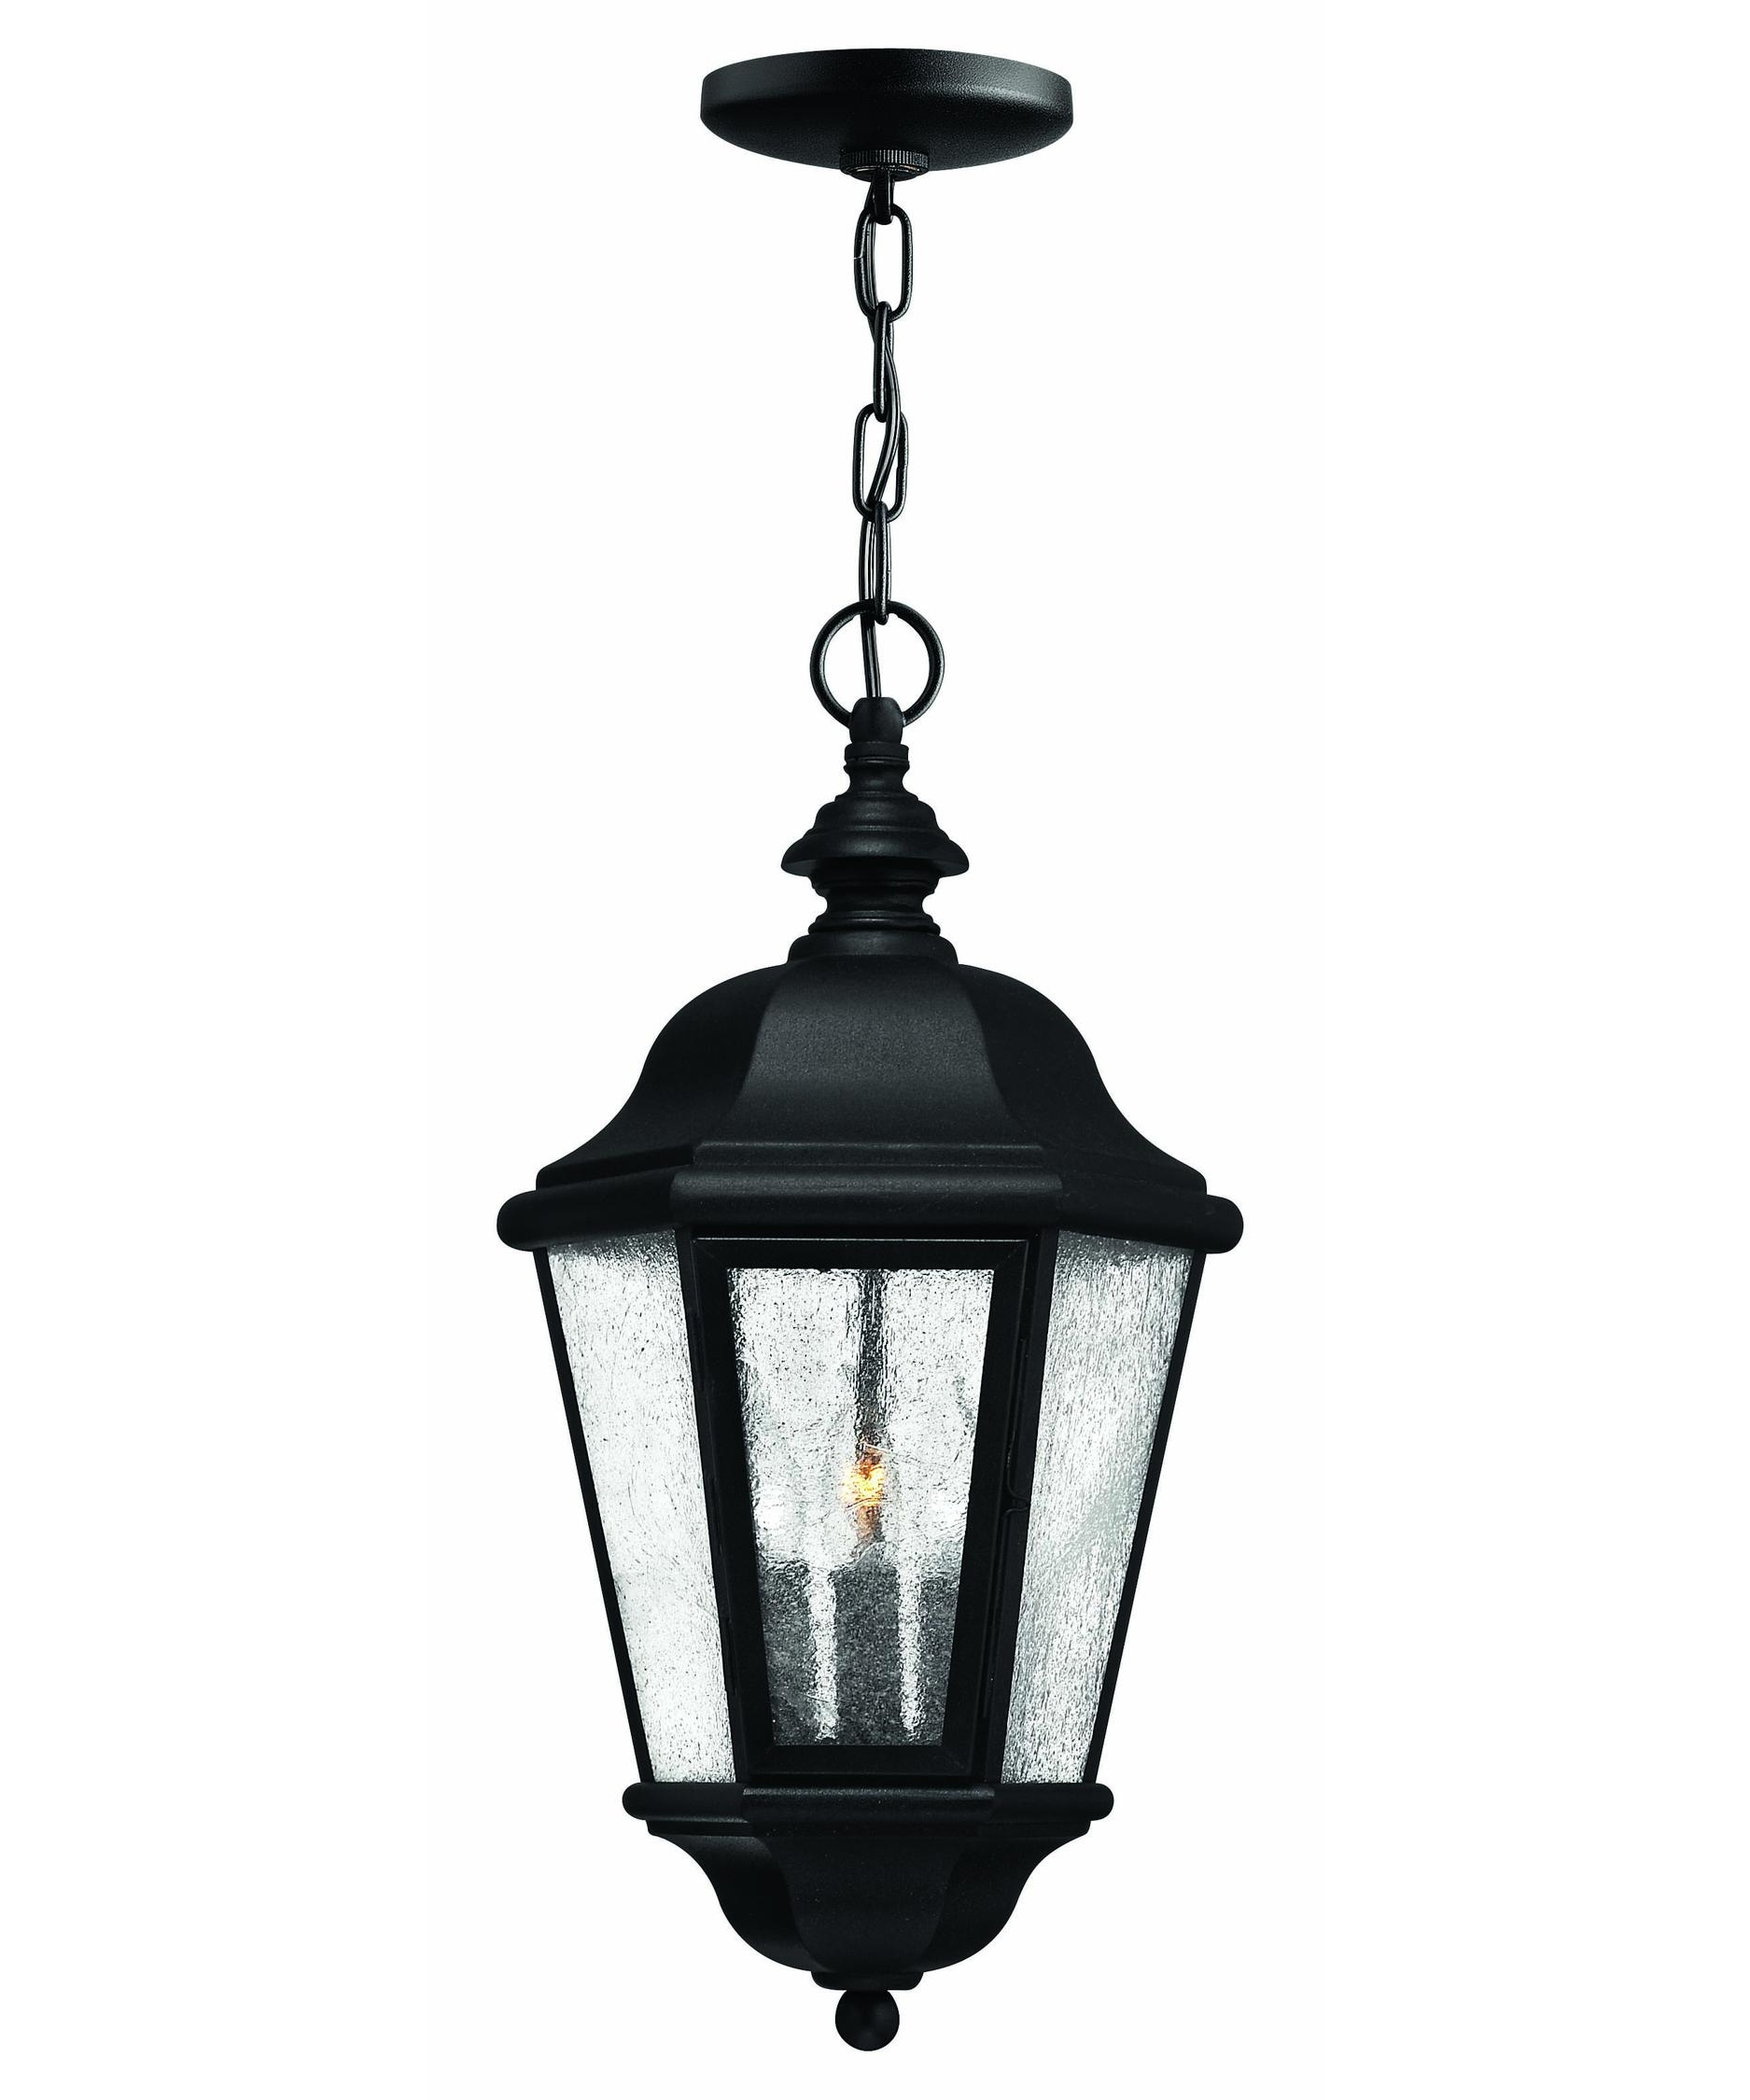 Popular Outdoor Hanging Lights At Amazon With Regard To Hinkley Lighting 1672 Edgewater 10 Inch Wide 3 Light Outdoor Hanging (View 15 of 20)